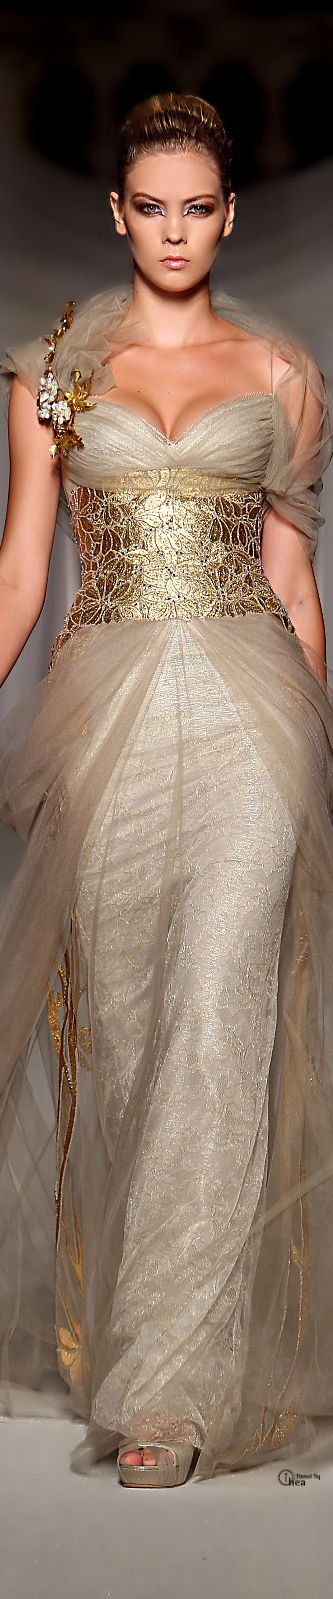 Abed Mahfouz Haute Couture | House of Beccaria#